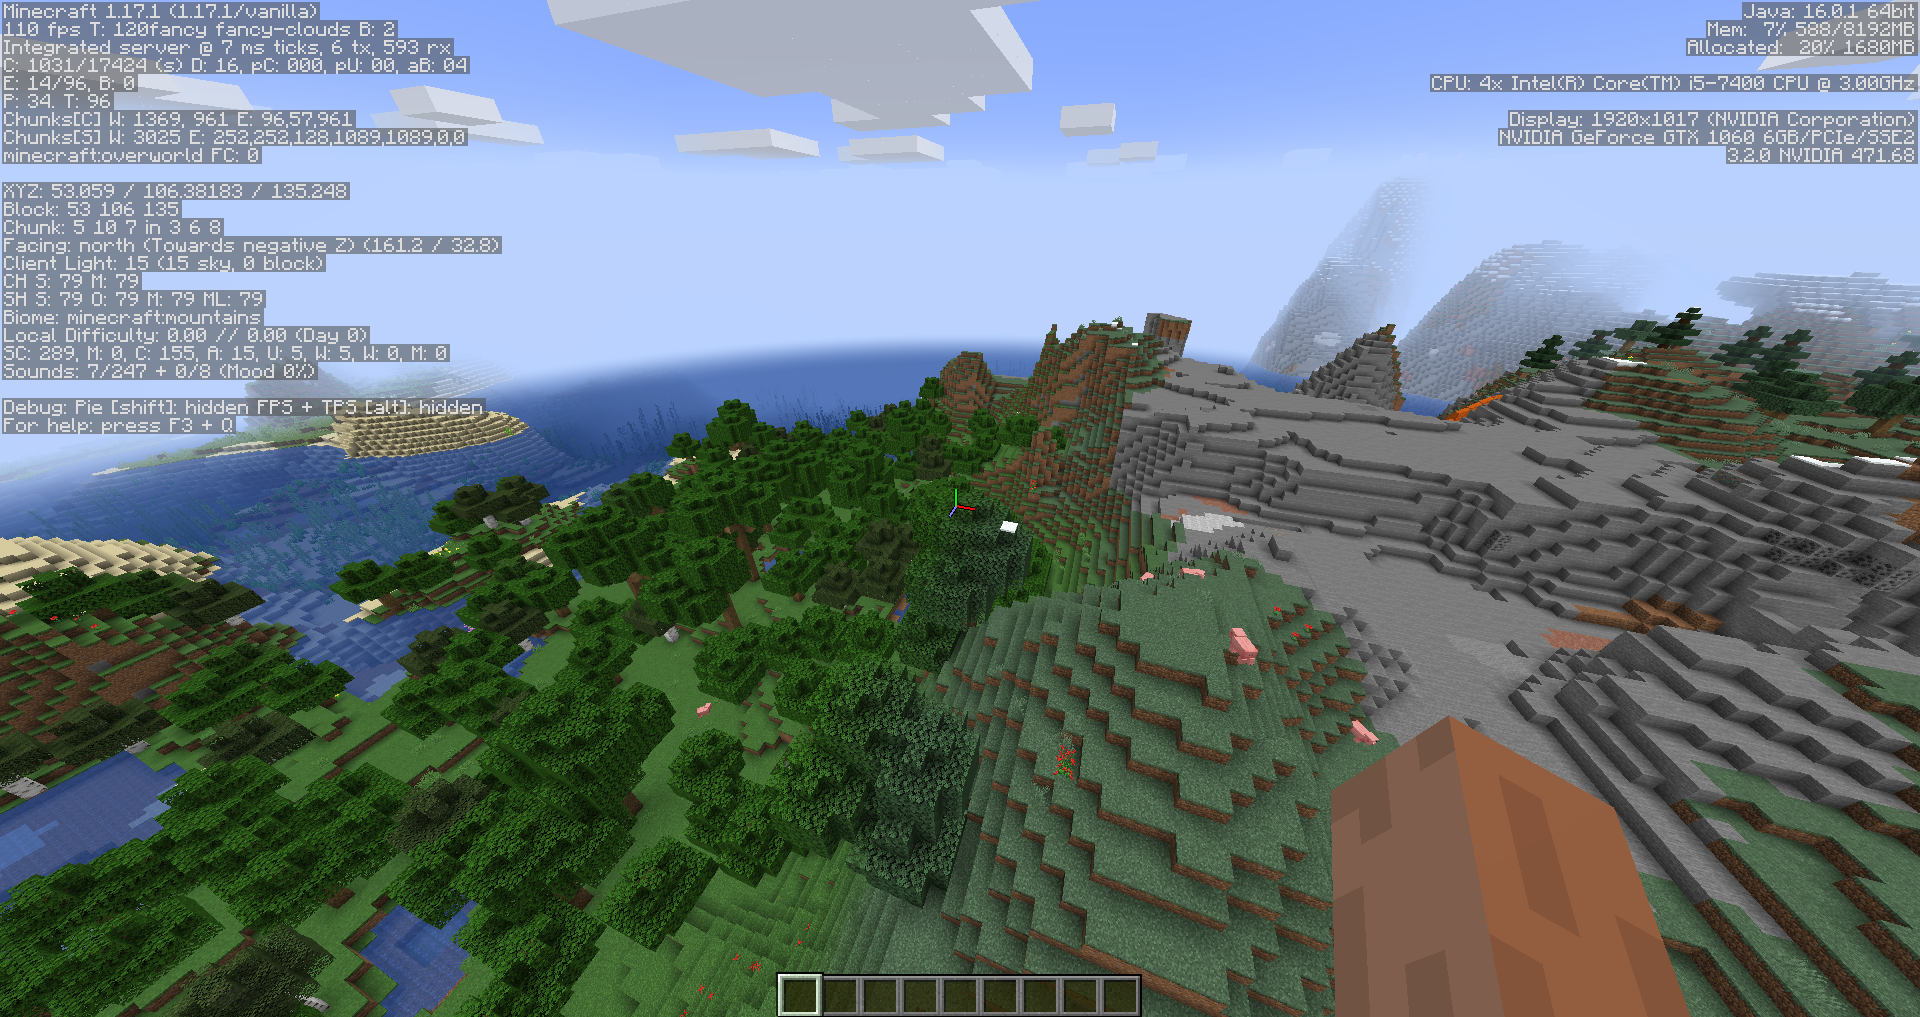 example of minecraft debugging info